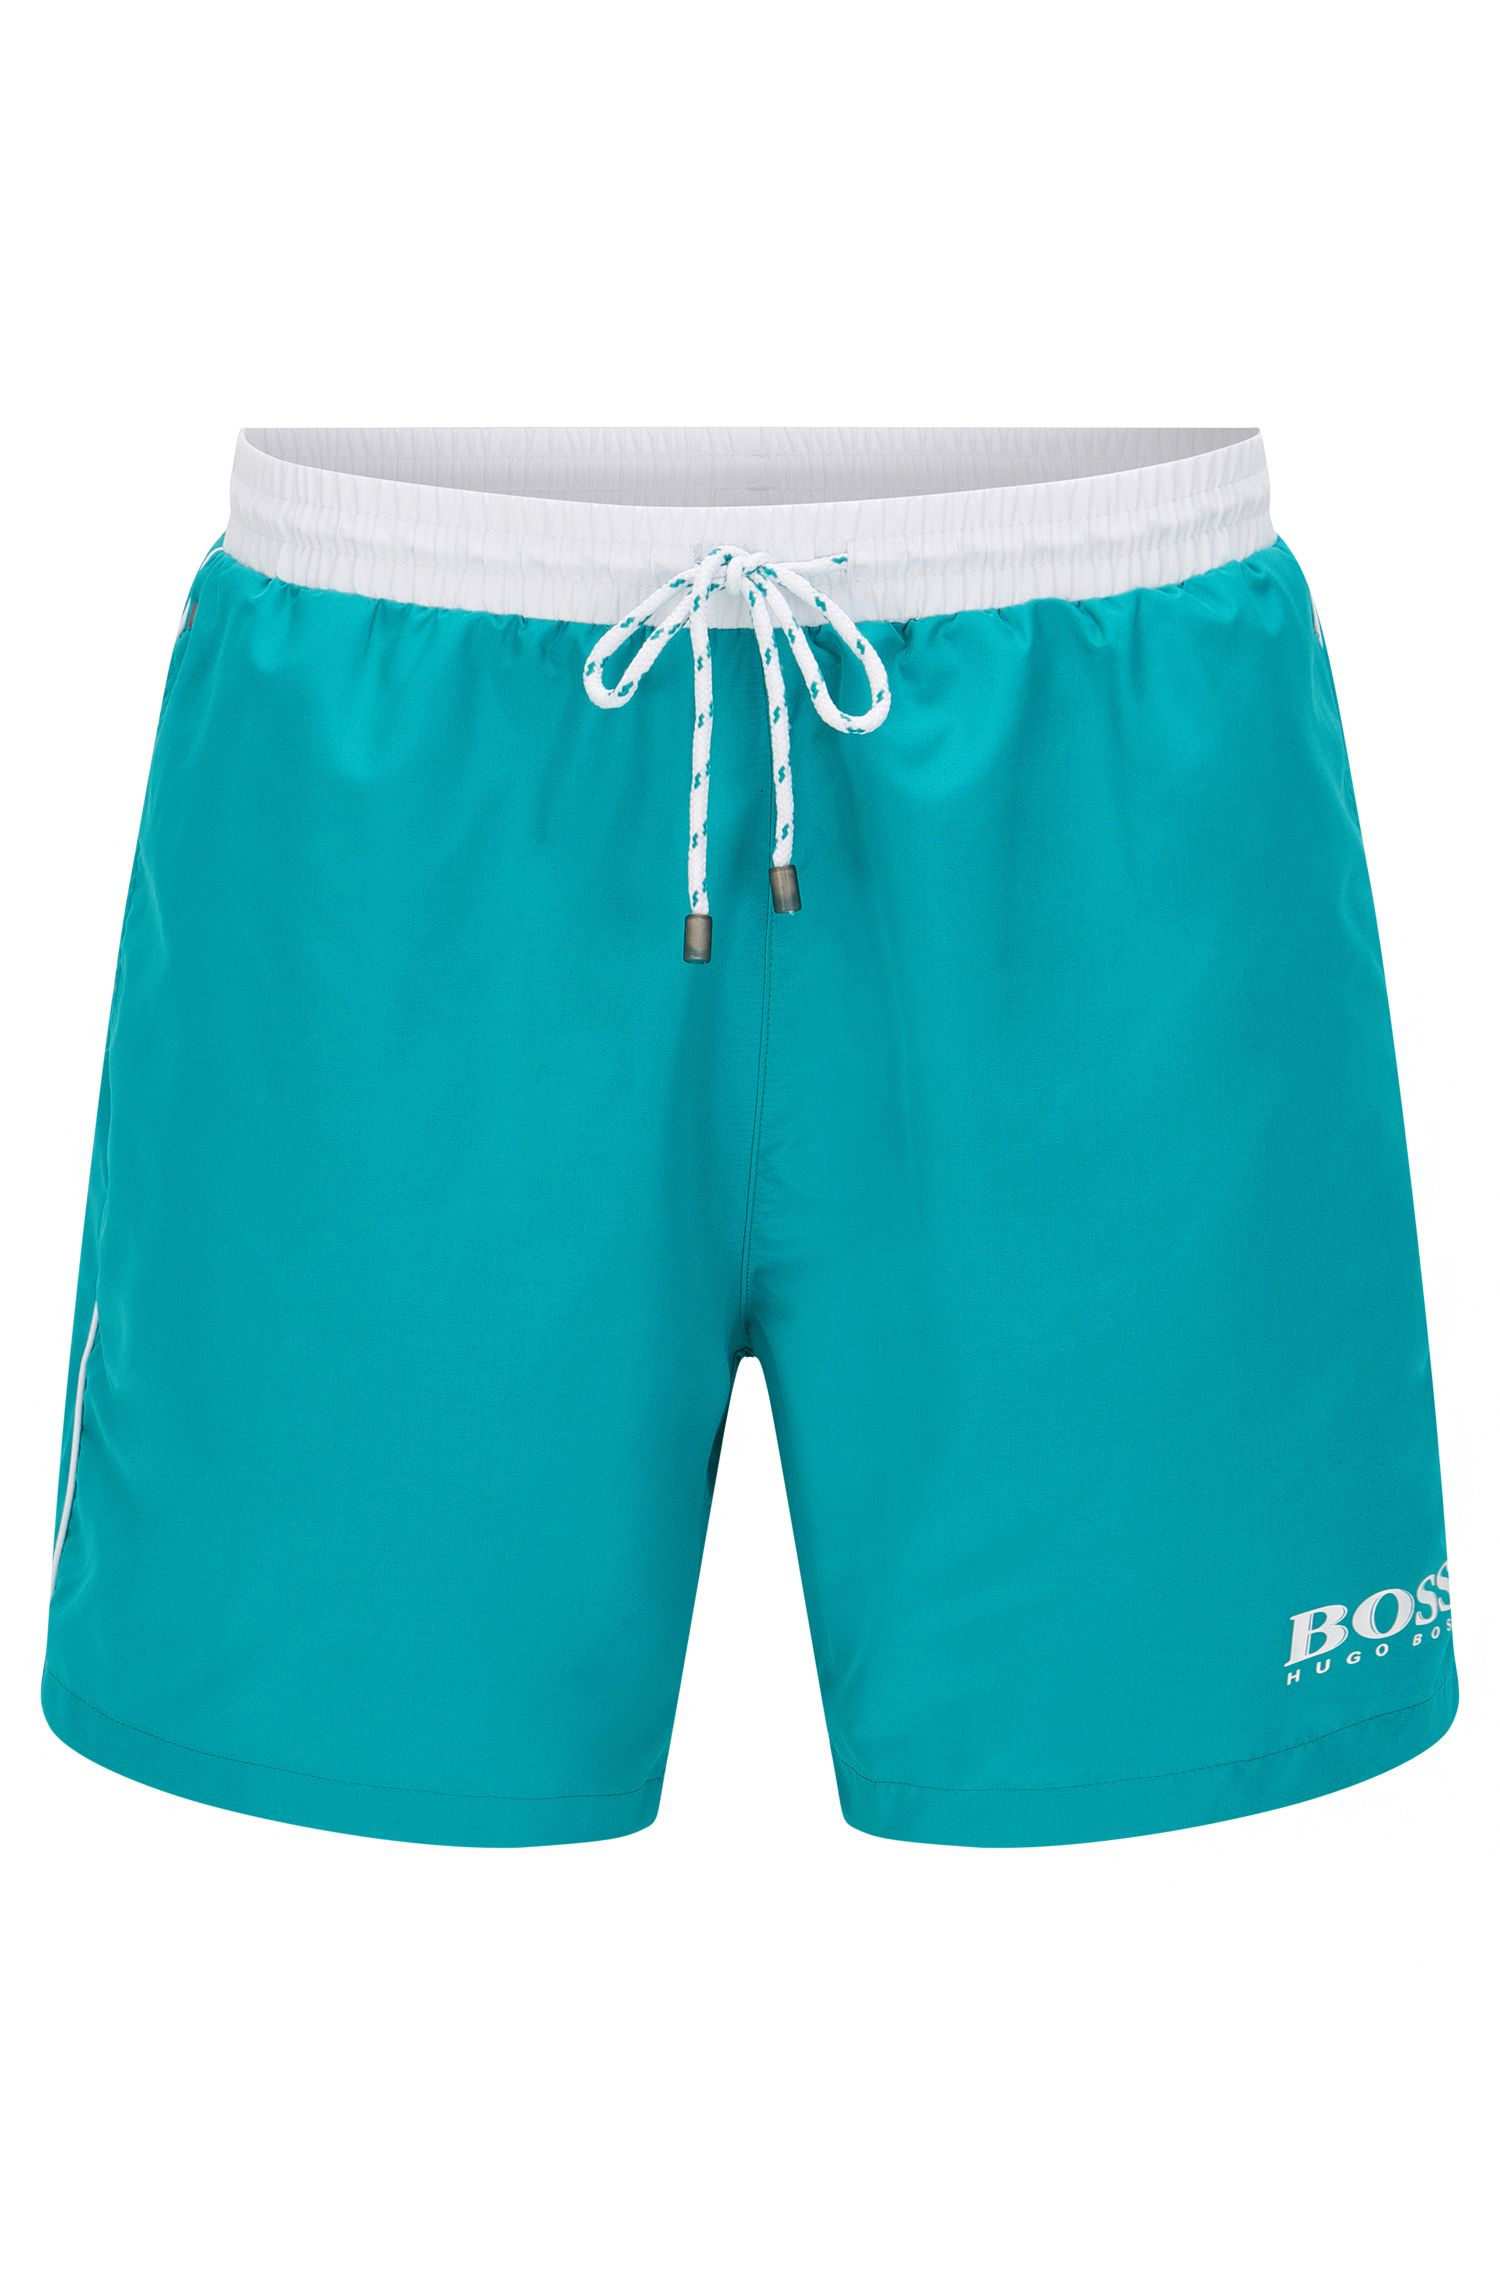 Quick-drying swim shorts with contrast piping